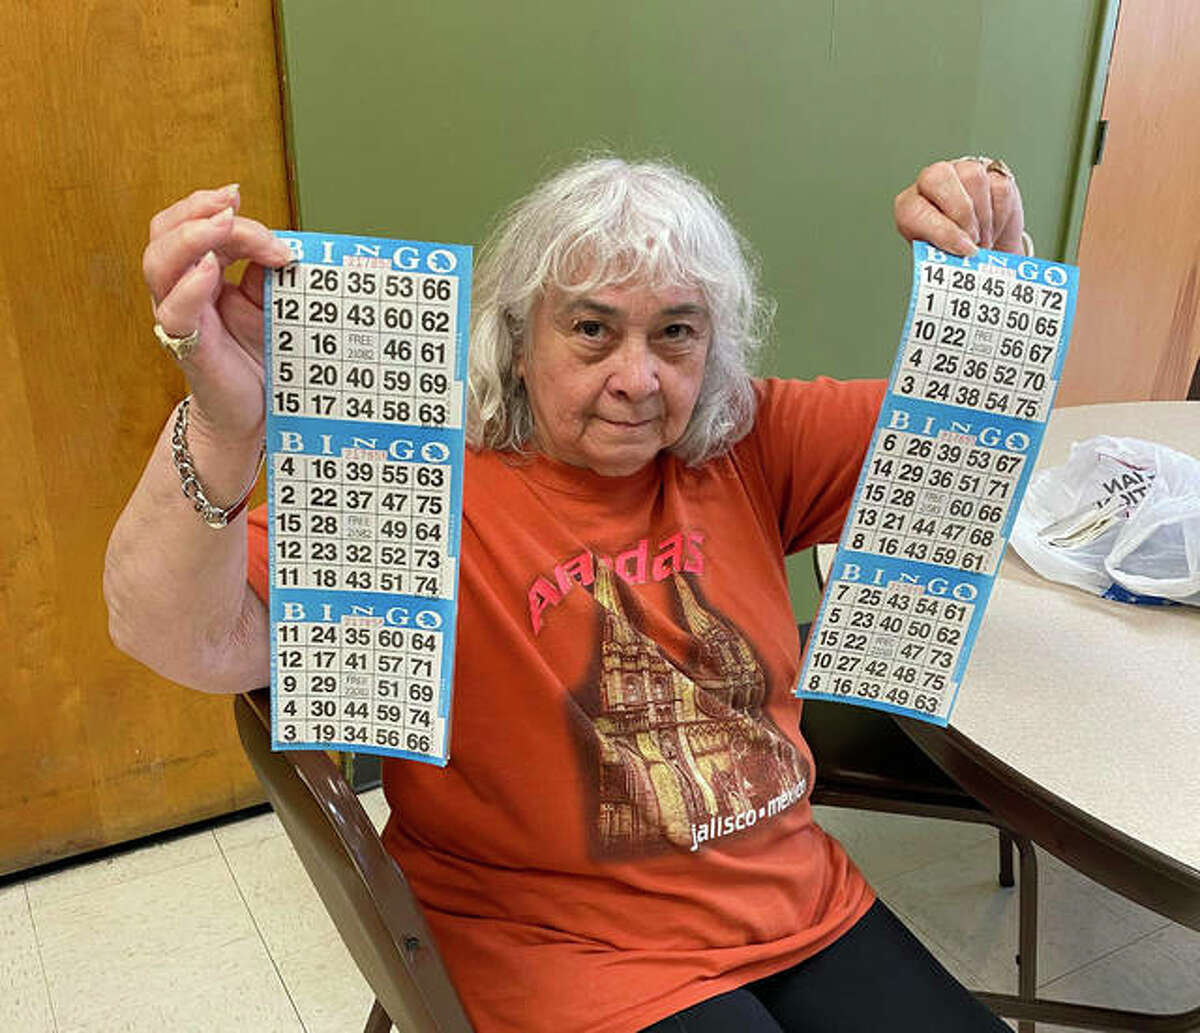 Helen, a Main Street Community Center client, shows her bingo cards during a Friday game at the center.